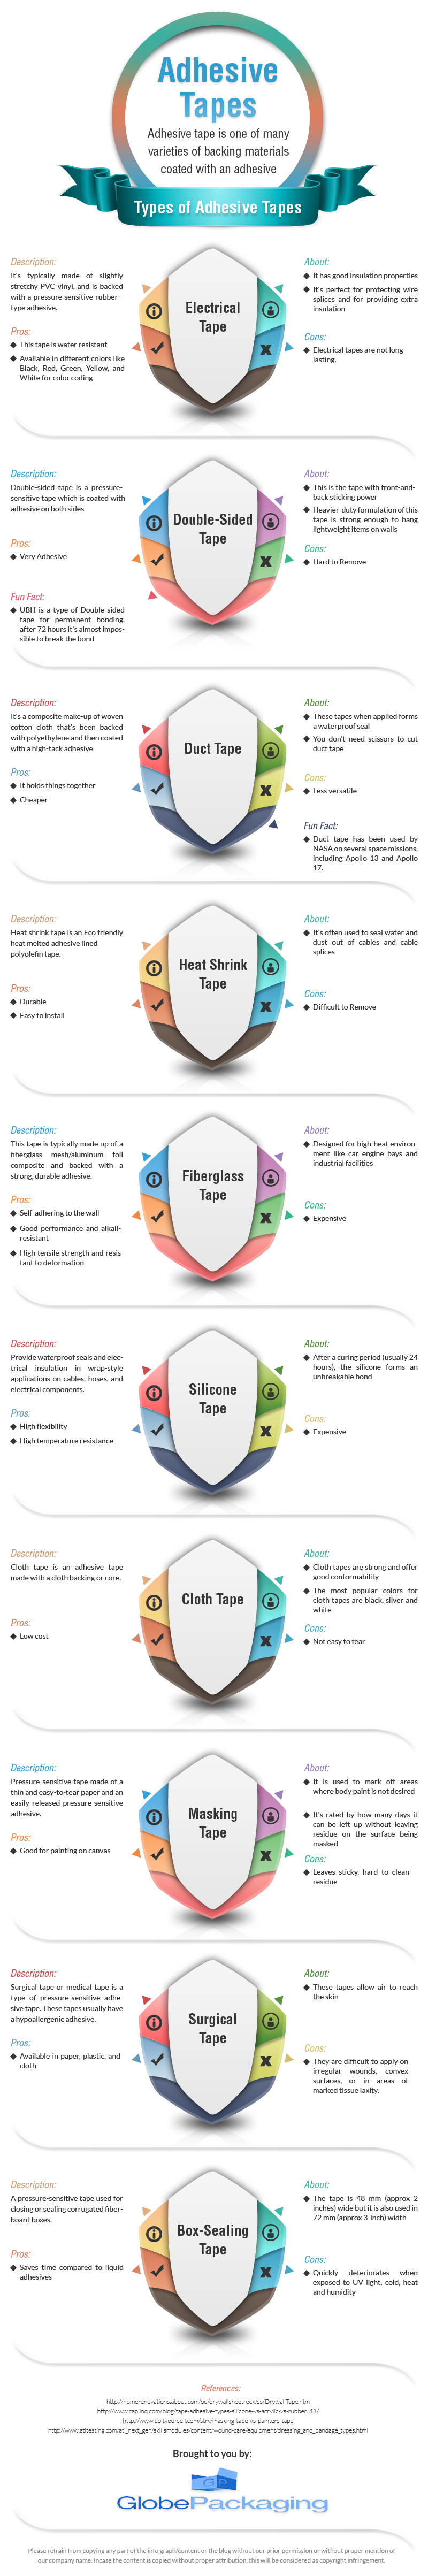 Types of Adhesive Tape by Globe Packaging